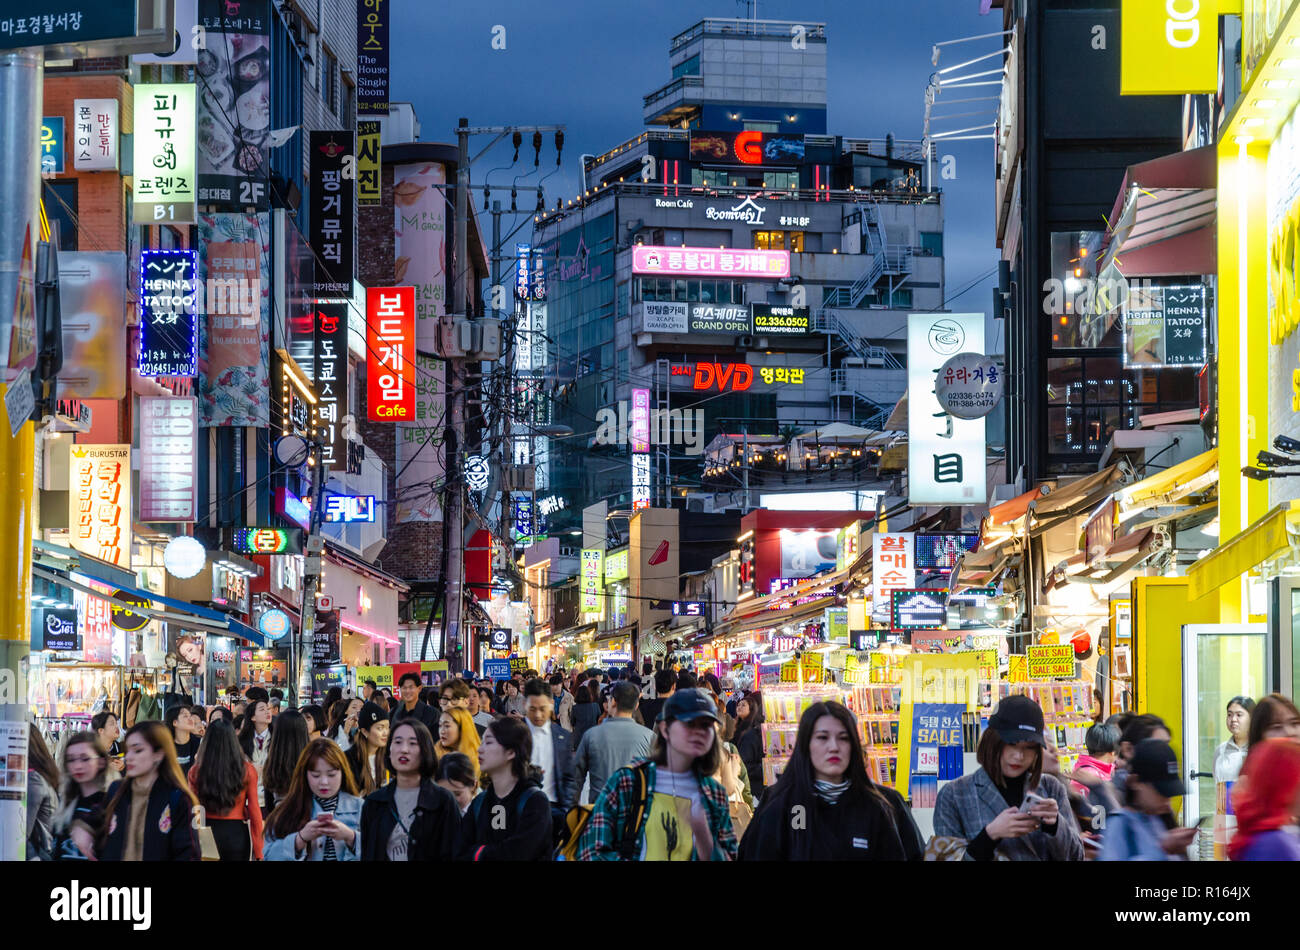 The Seogyo-Dong, Hongdae area of Seoul in South Korea, busy with people at night.Stock Photo